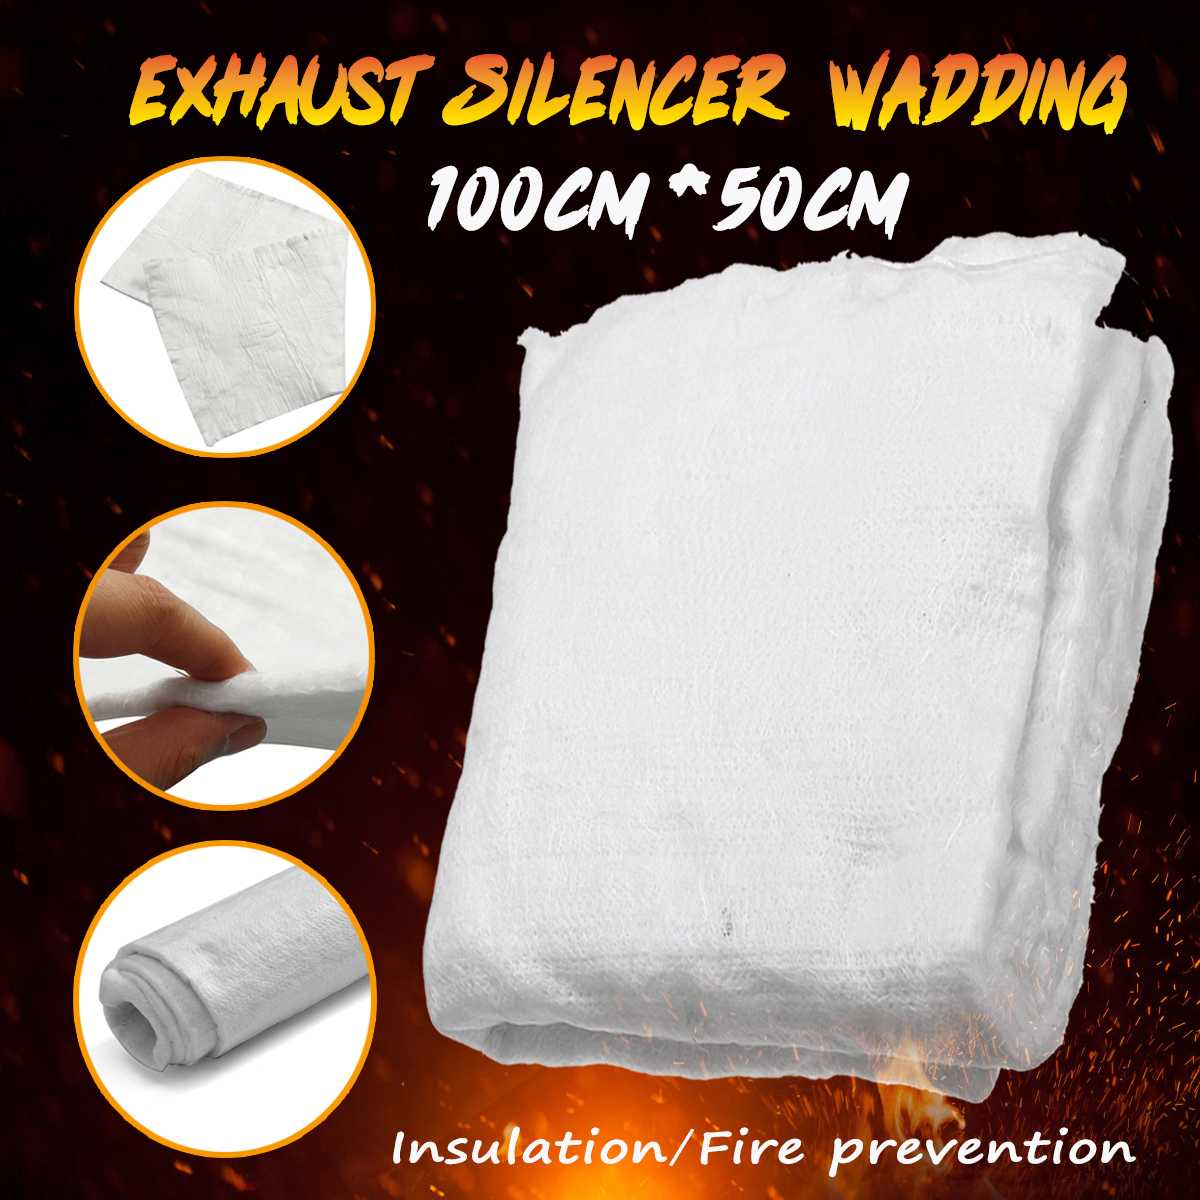 100cmx50cm Motorcycle Exhaust  Insulation Cotton Exhaust Silencer Wadding Sheet Insulation Cotton Blanket|Exhaust  Assembly| |  - title=